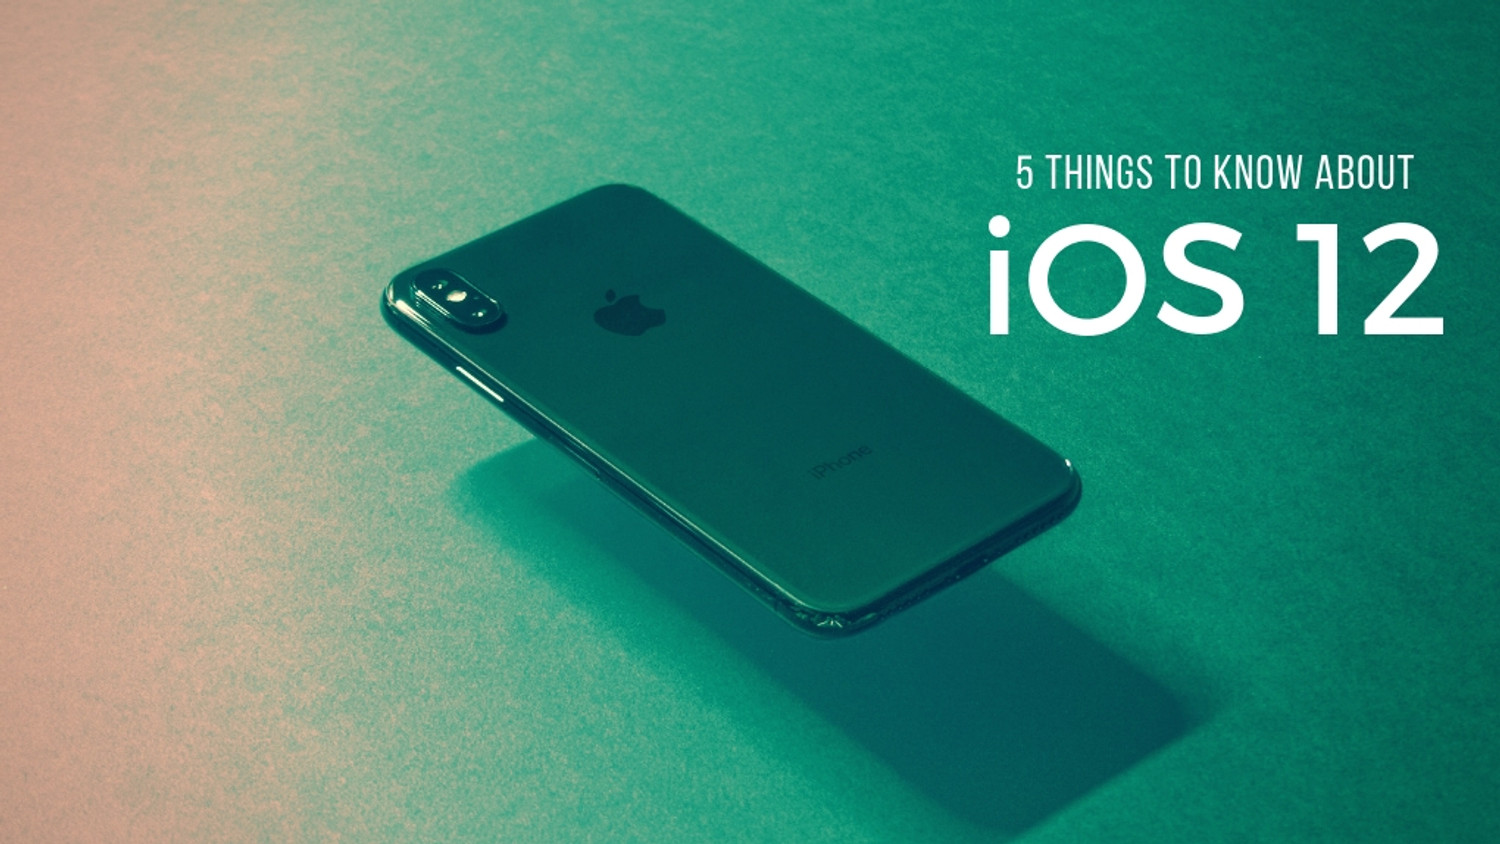 5 Things to Know about iOS 12